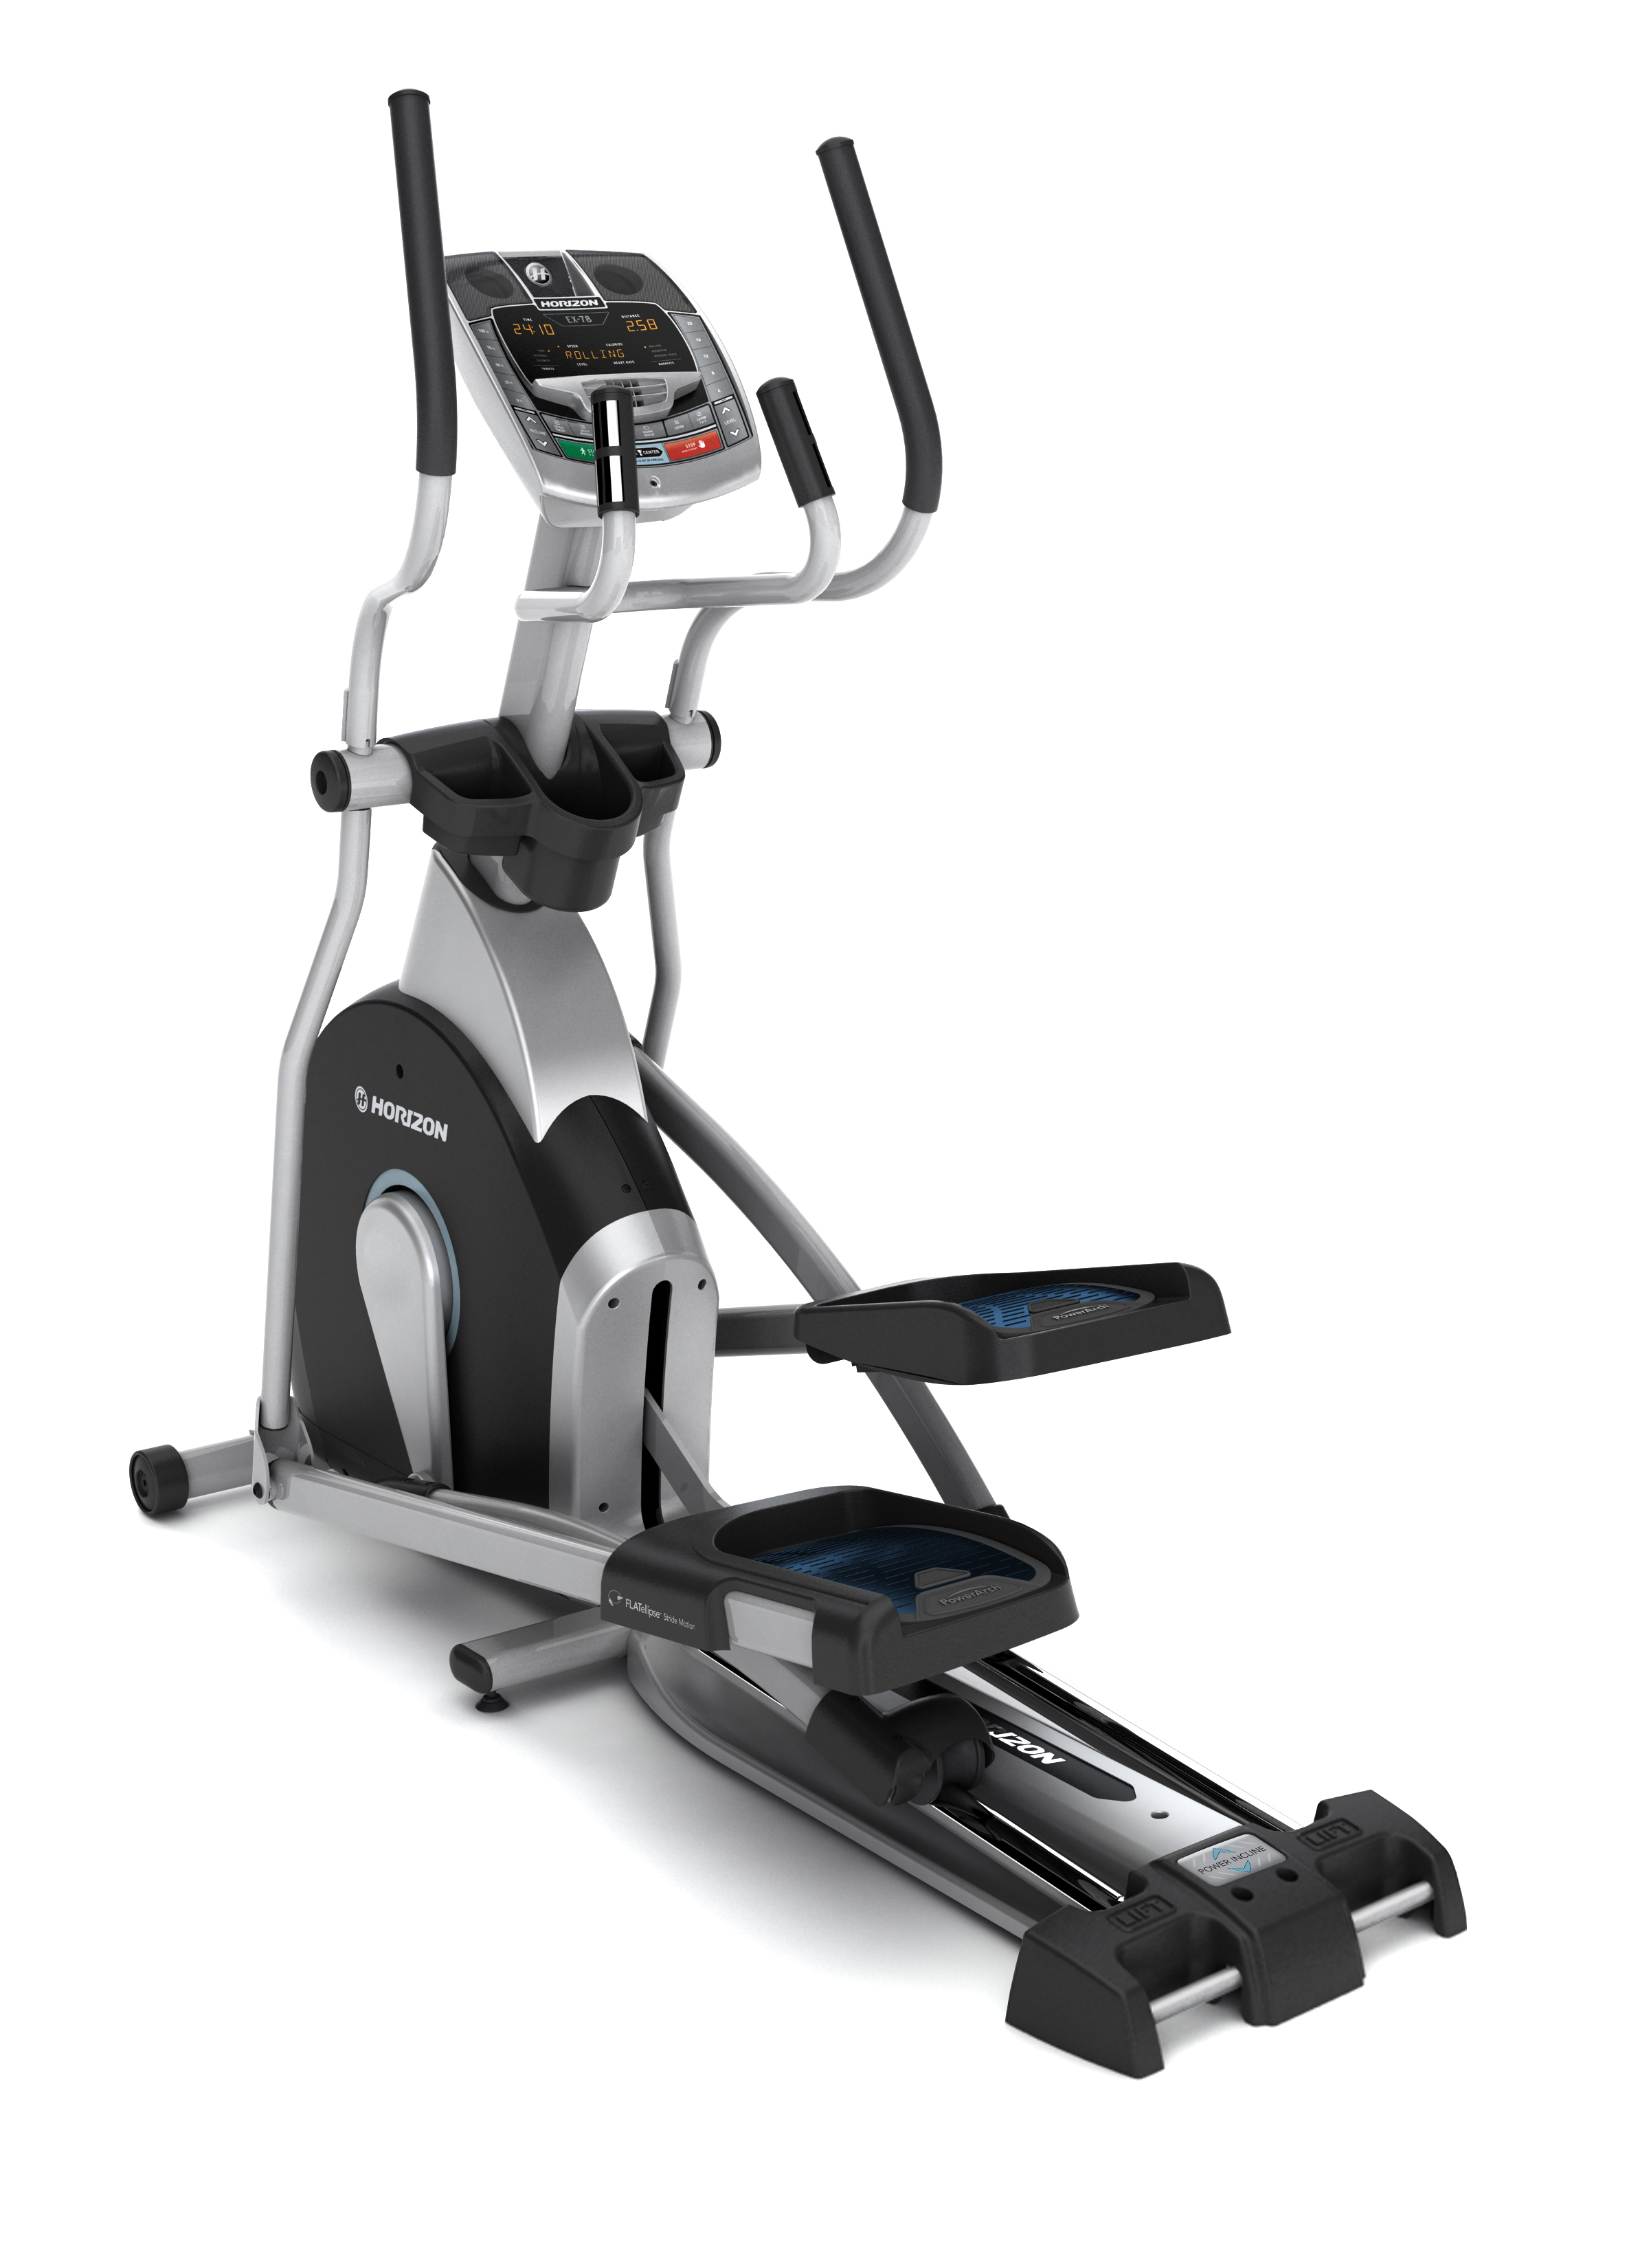 Horizon EX79 Dual Action Elliptical Elliptical Trainer 0 0 Yeast Infection No More Review   How Good Is It?